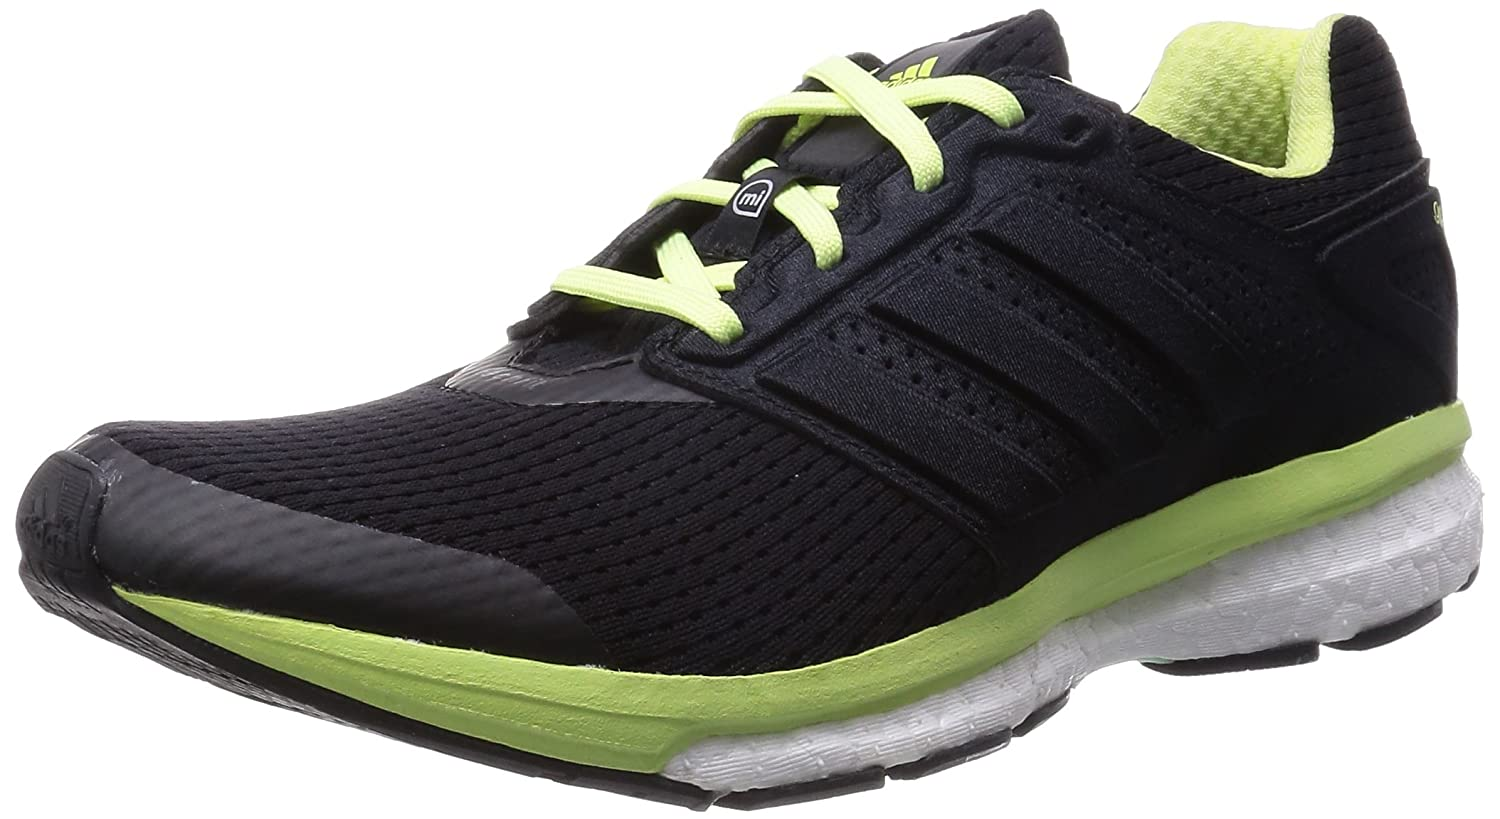 Adidas Supernova Glide Boost 7 W - Zapatillas para Mujer 38 2/3 EU|Core Black/Ftwr White/Frozen Yellow F15